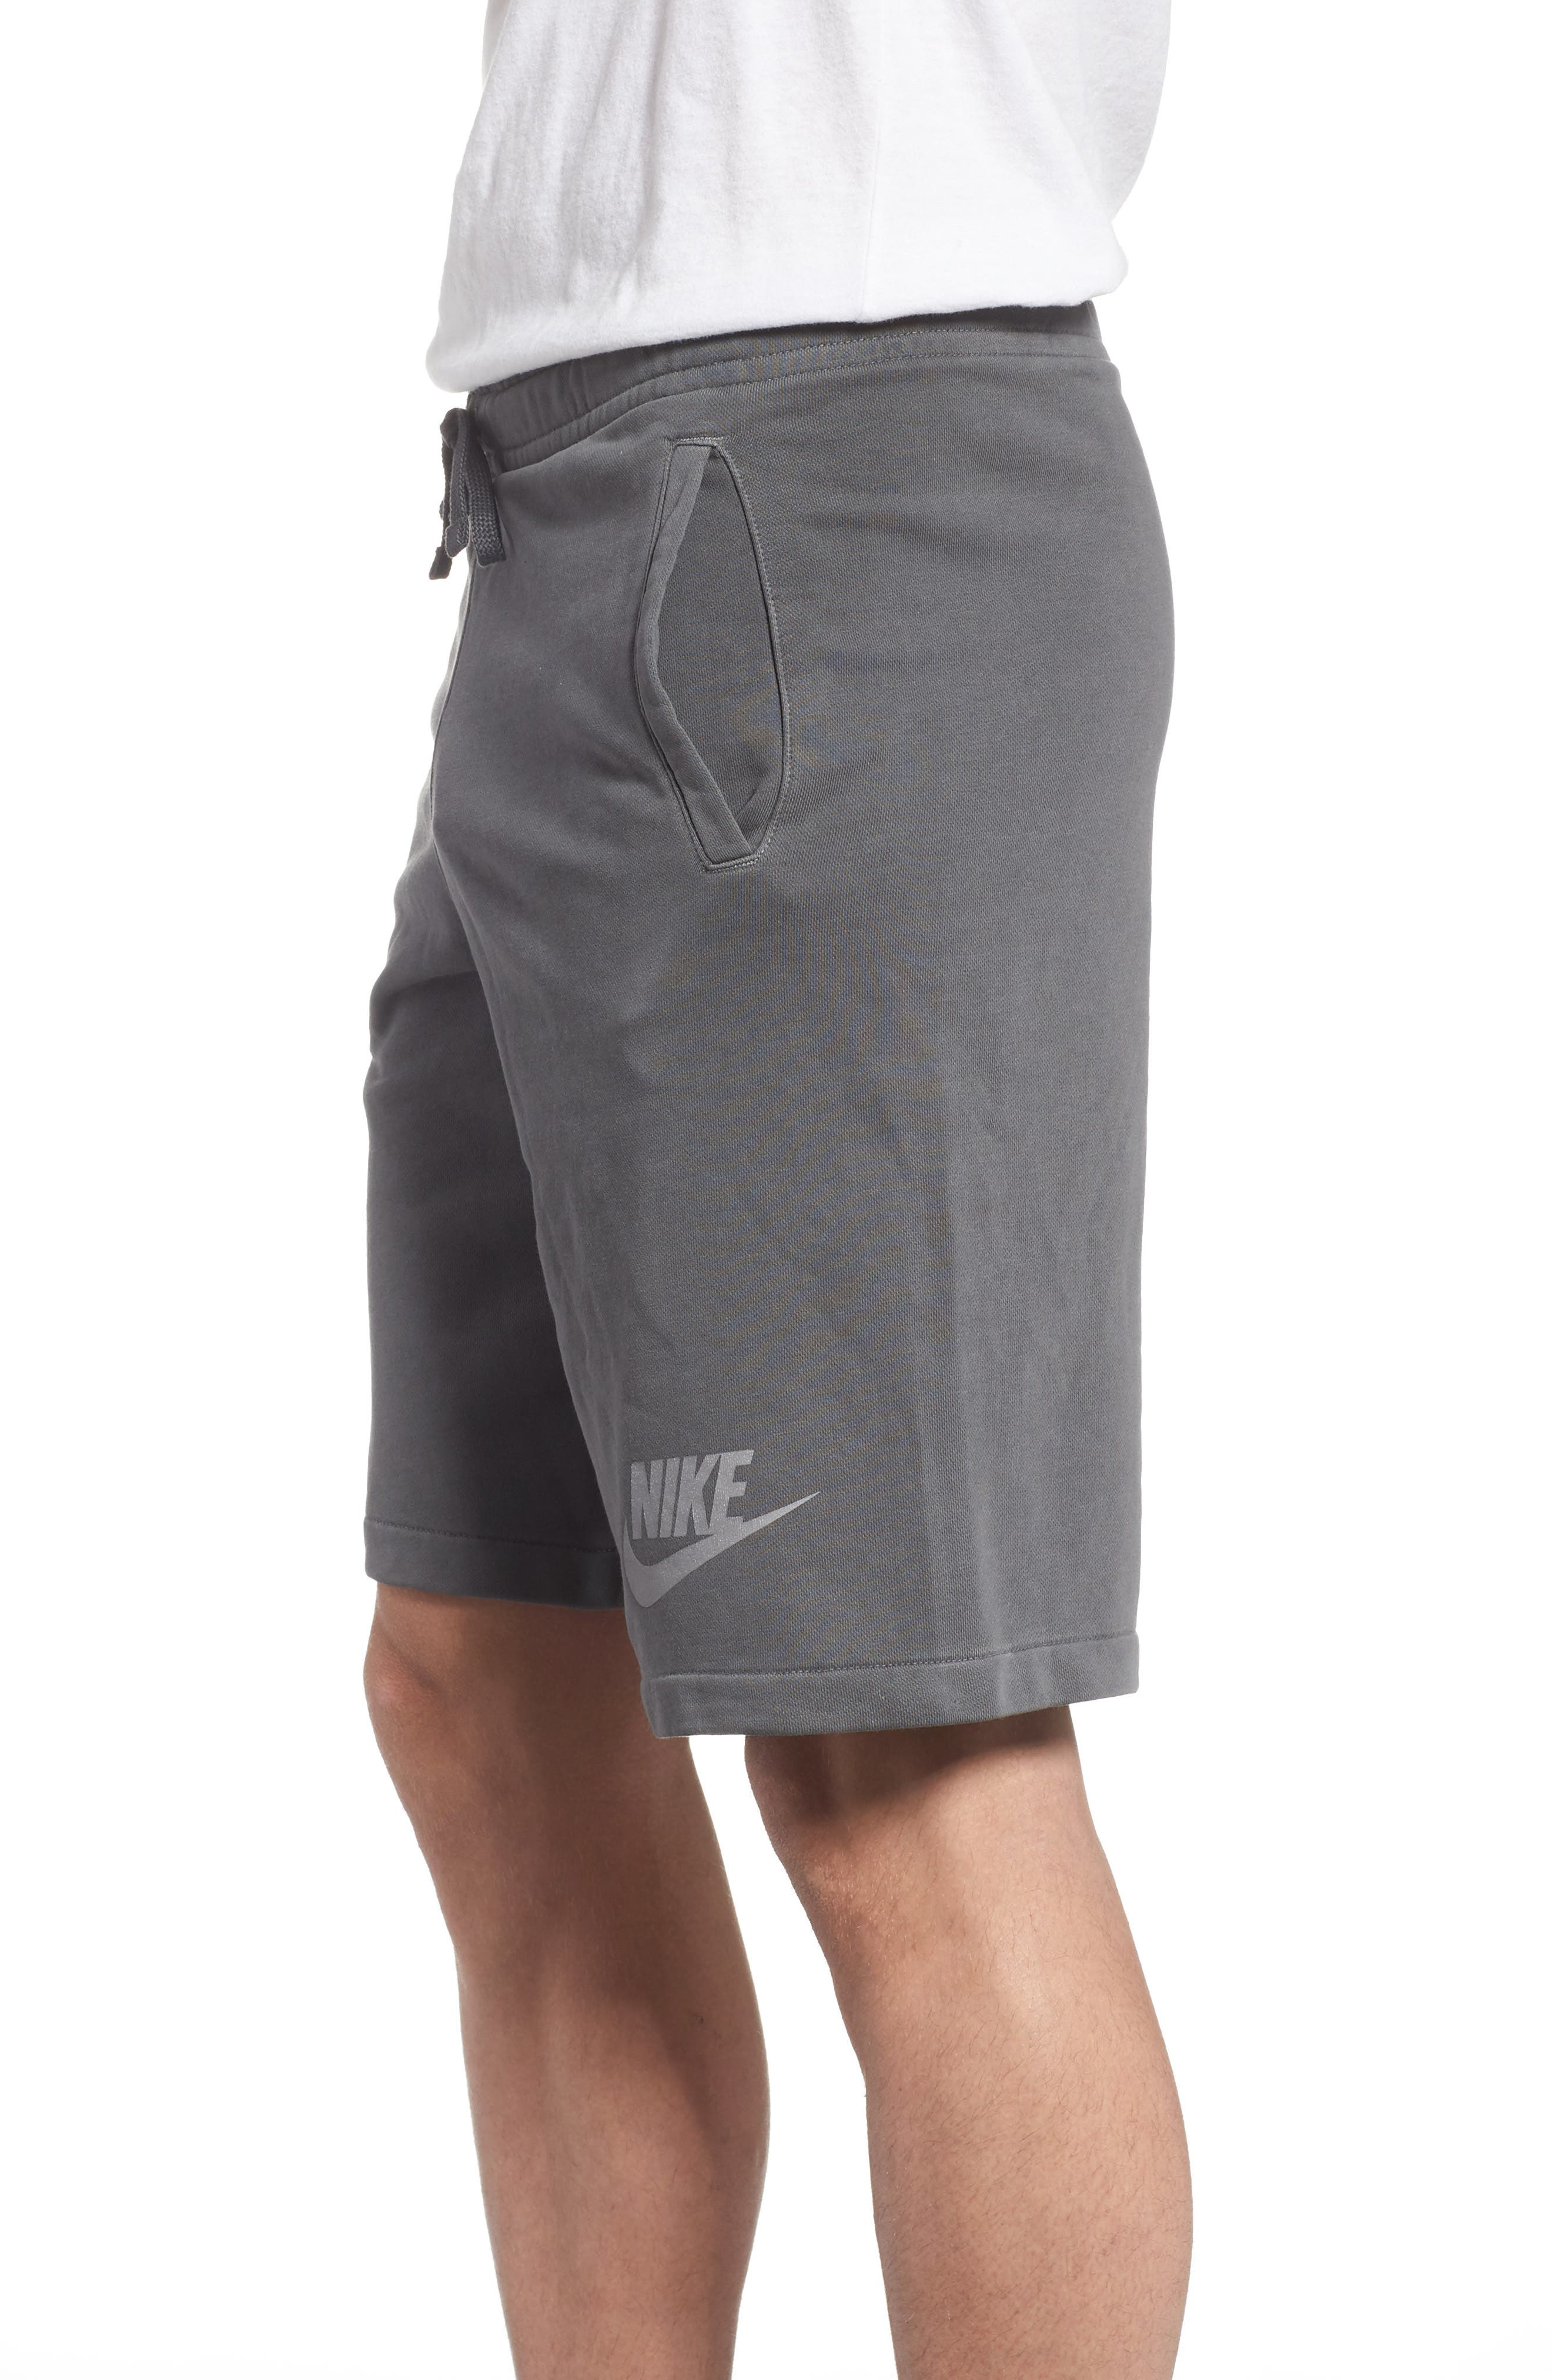 NSW Cotton Blend Shorts,                             Alternate thumbnail 3, color,                             Black/ Anthracite/ Cool Grey